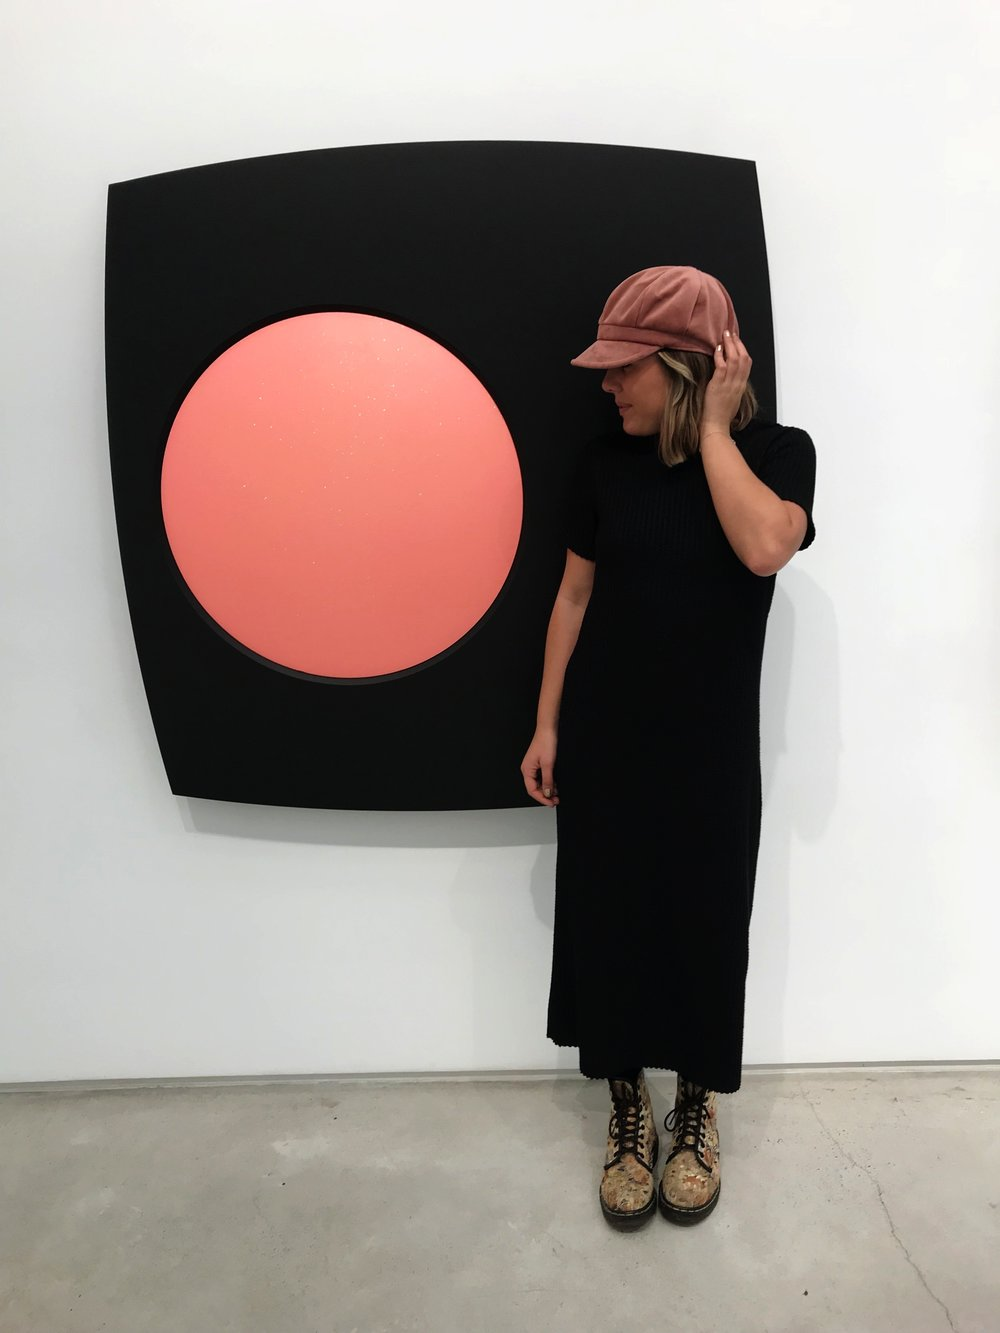 Madison looking adorable at the Salon 94 Gallery